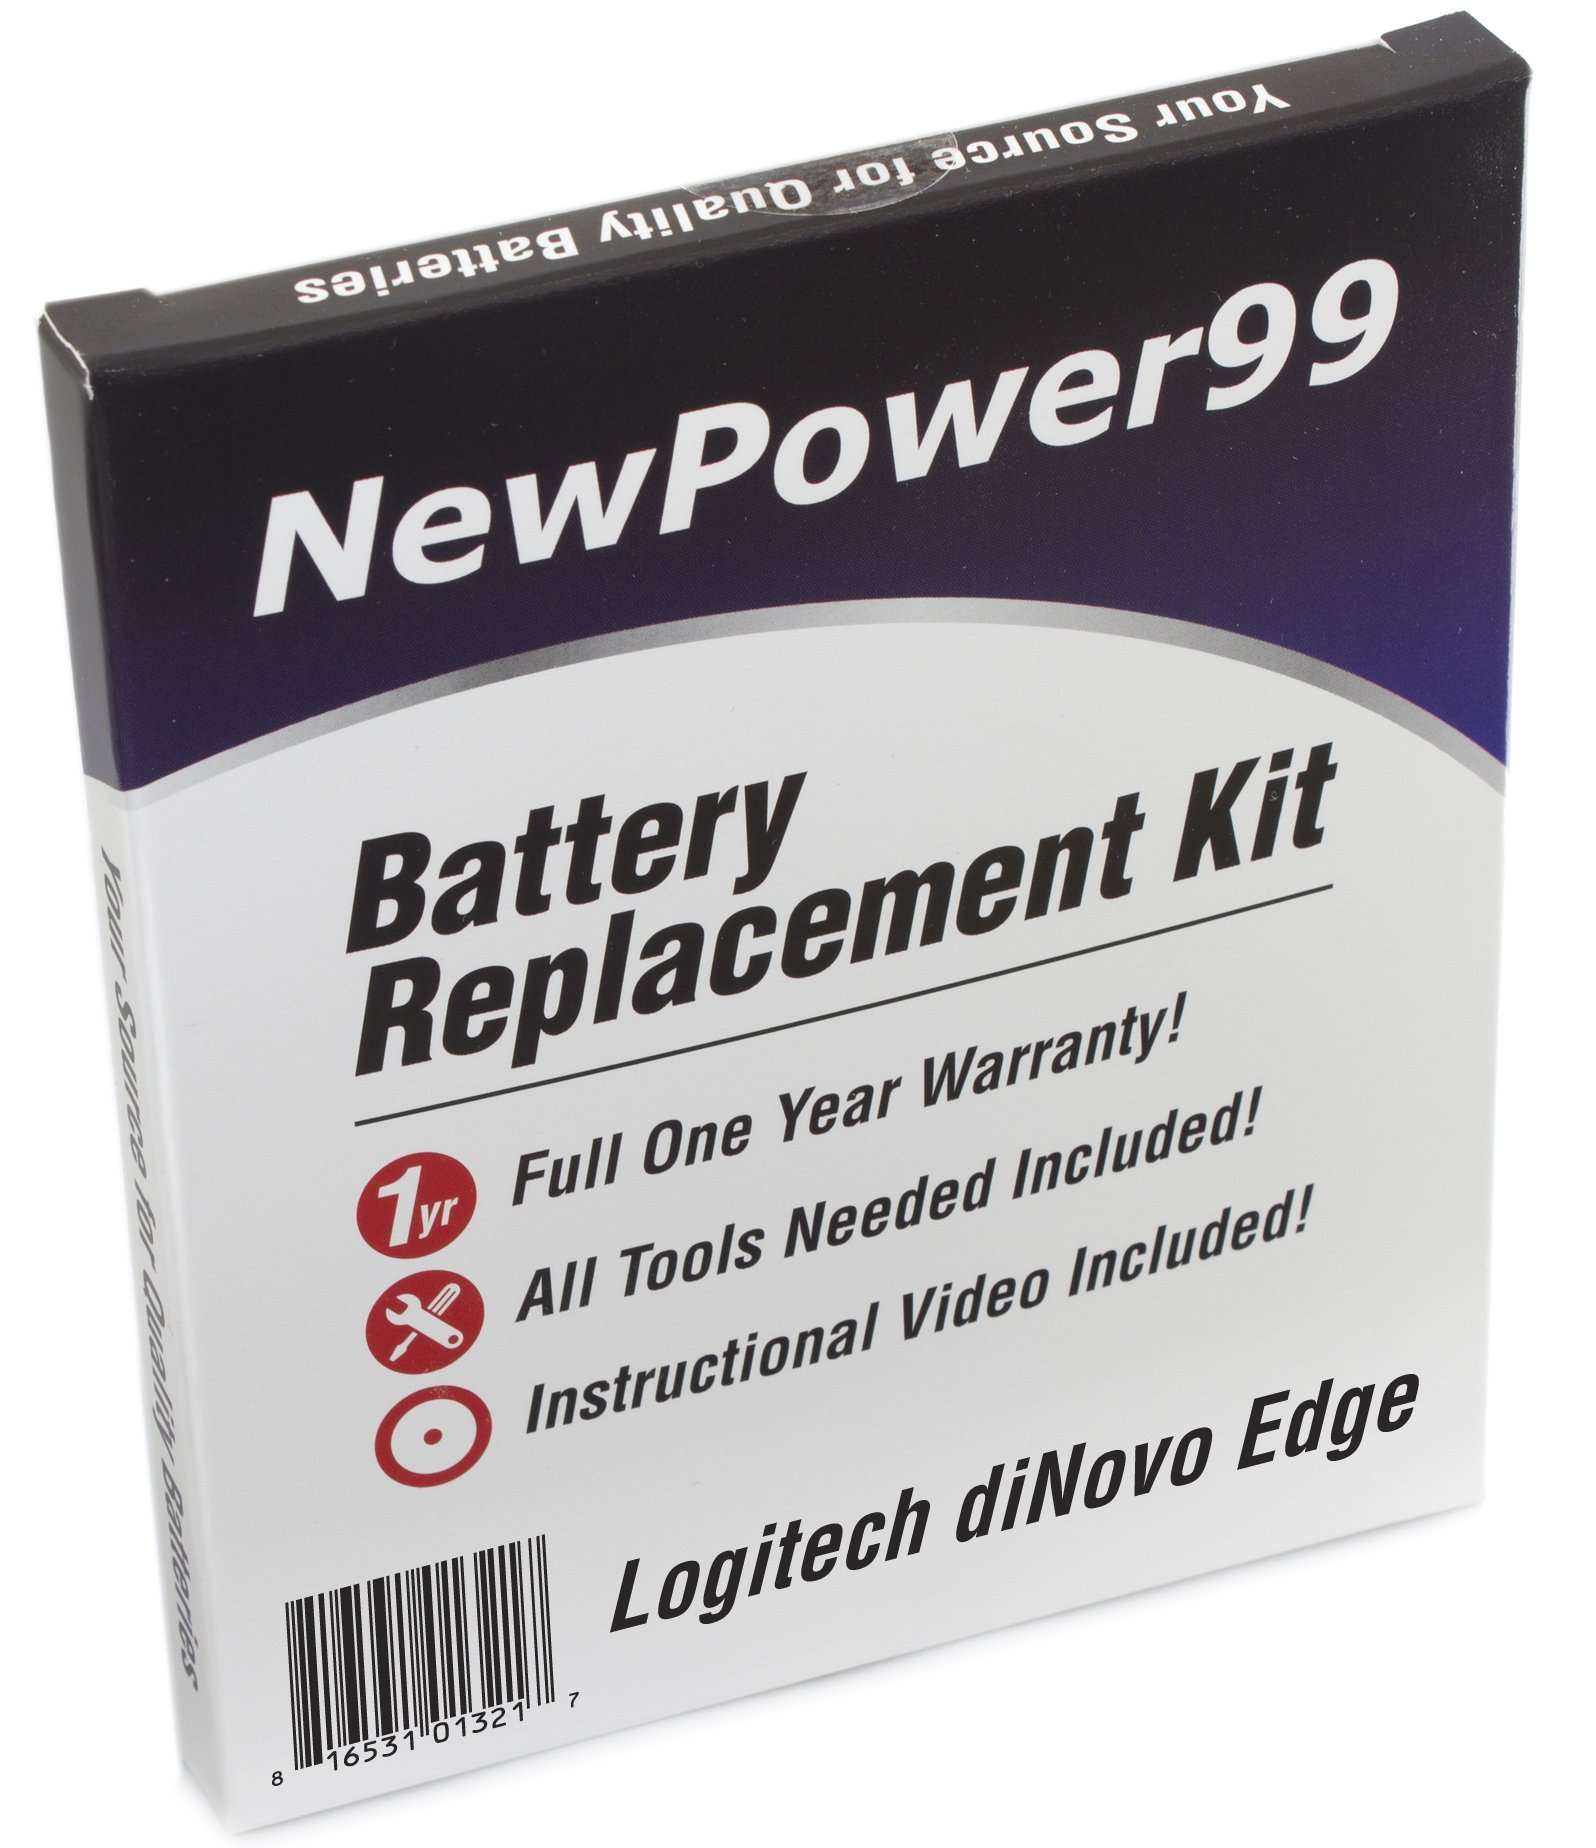 Battery Kit for Logitech diNovo Edge Wireless Keyboard with Video Instructions, Tools, and Extended Life Battery from…